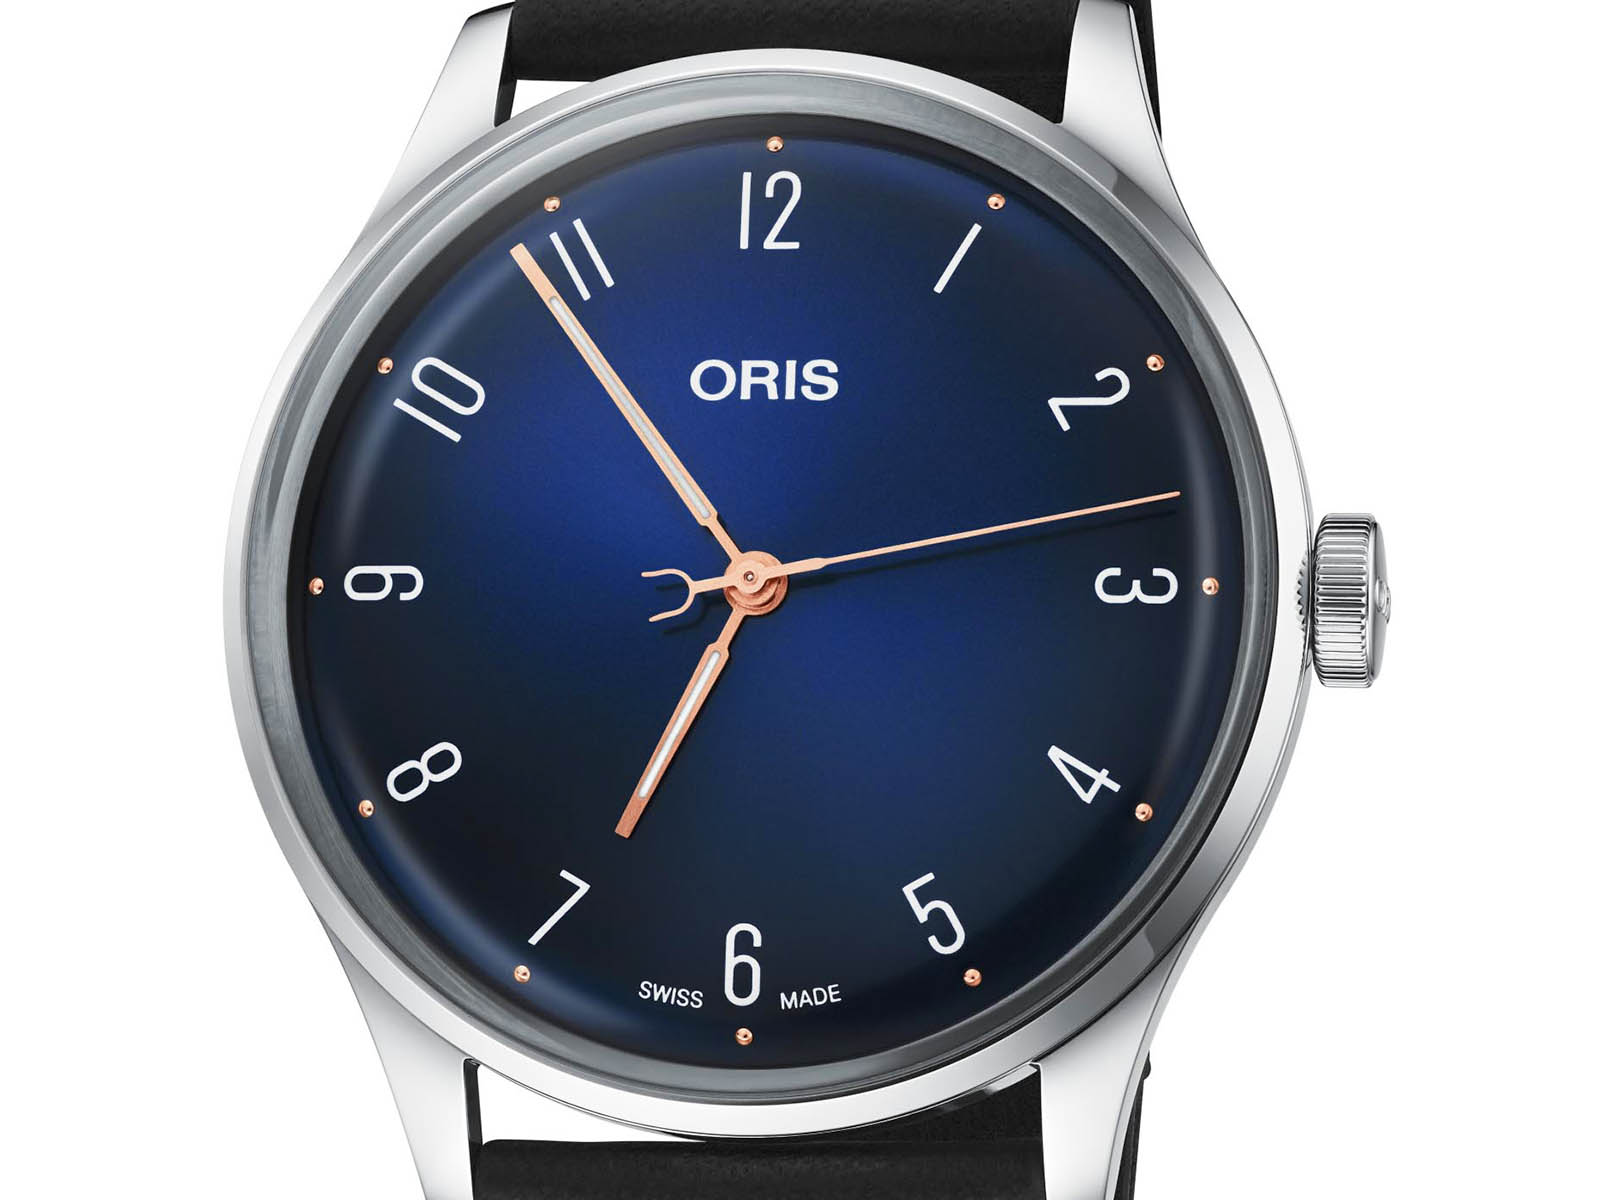 01-733-7762-4085-set-oris-james-morrison-academy-of-music-limited-edition-5.jpg